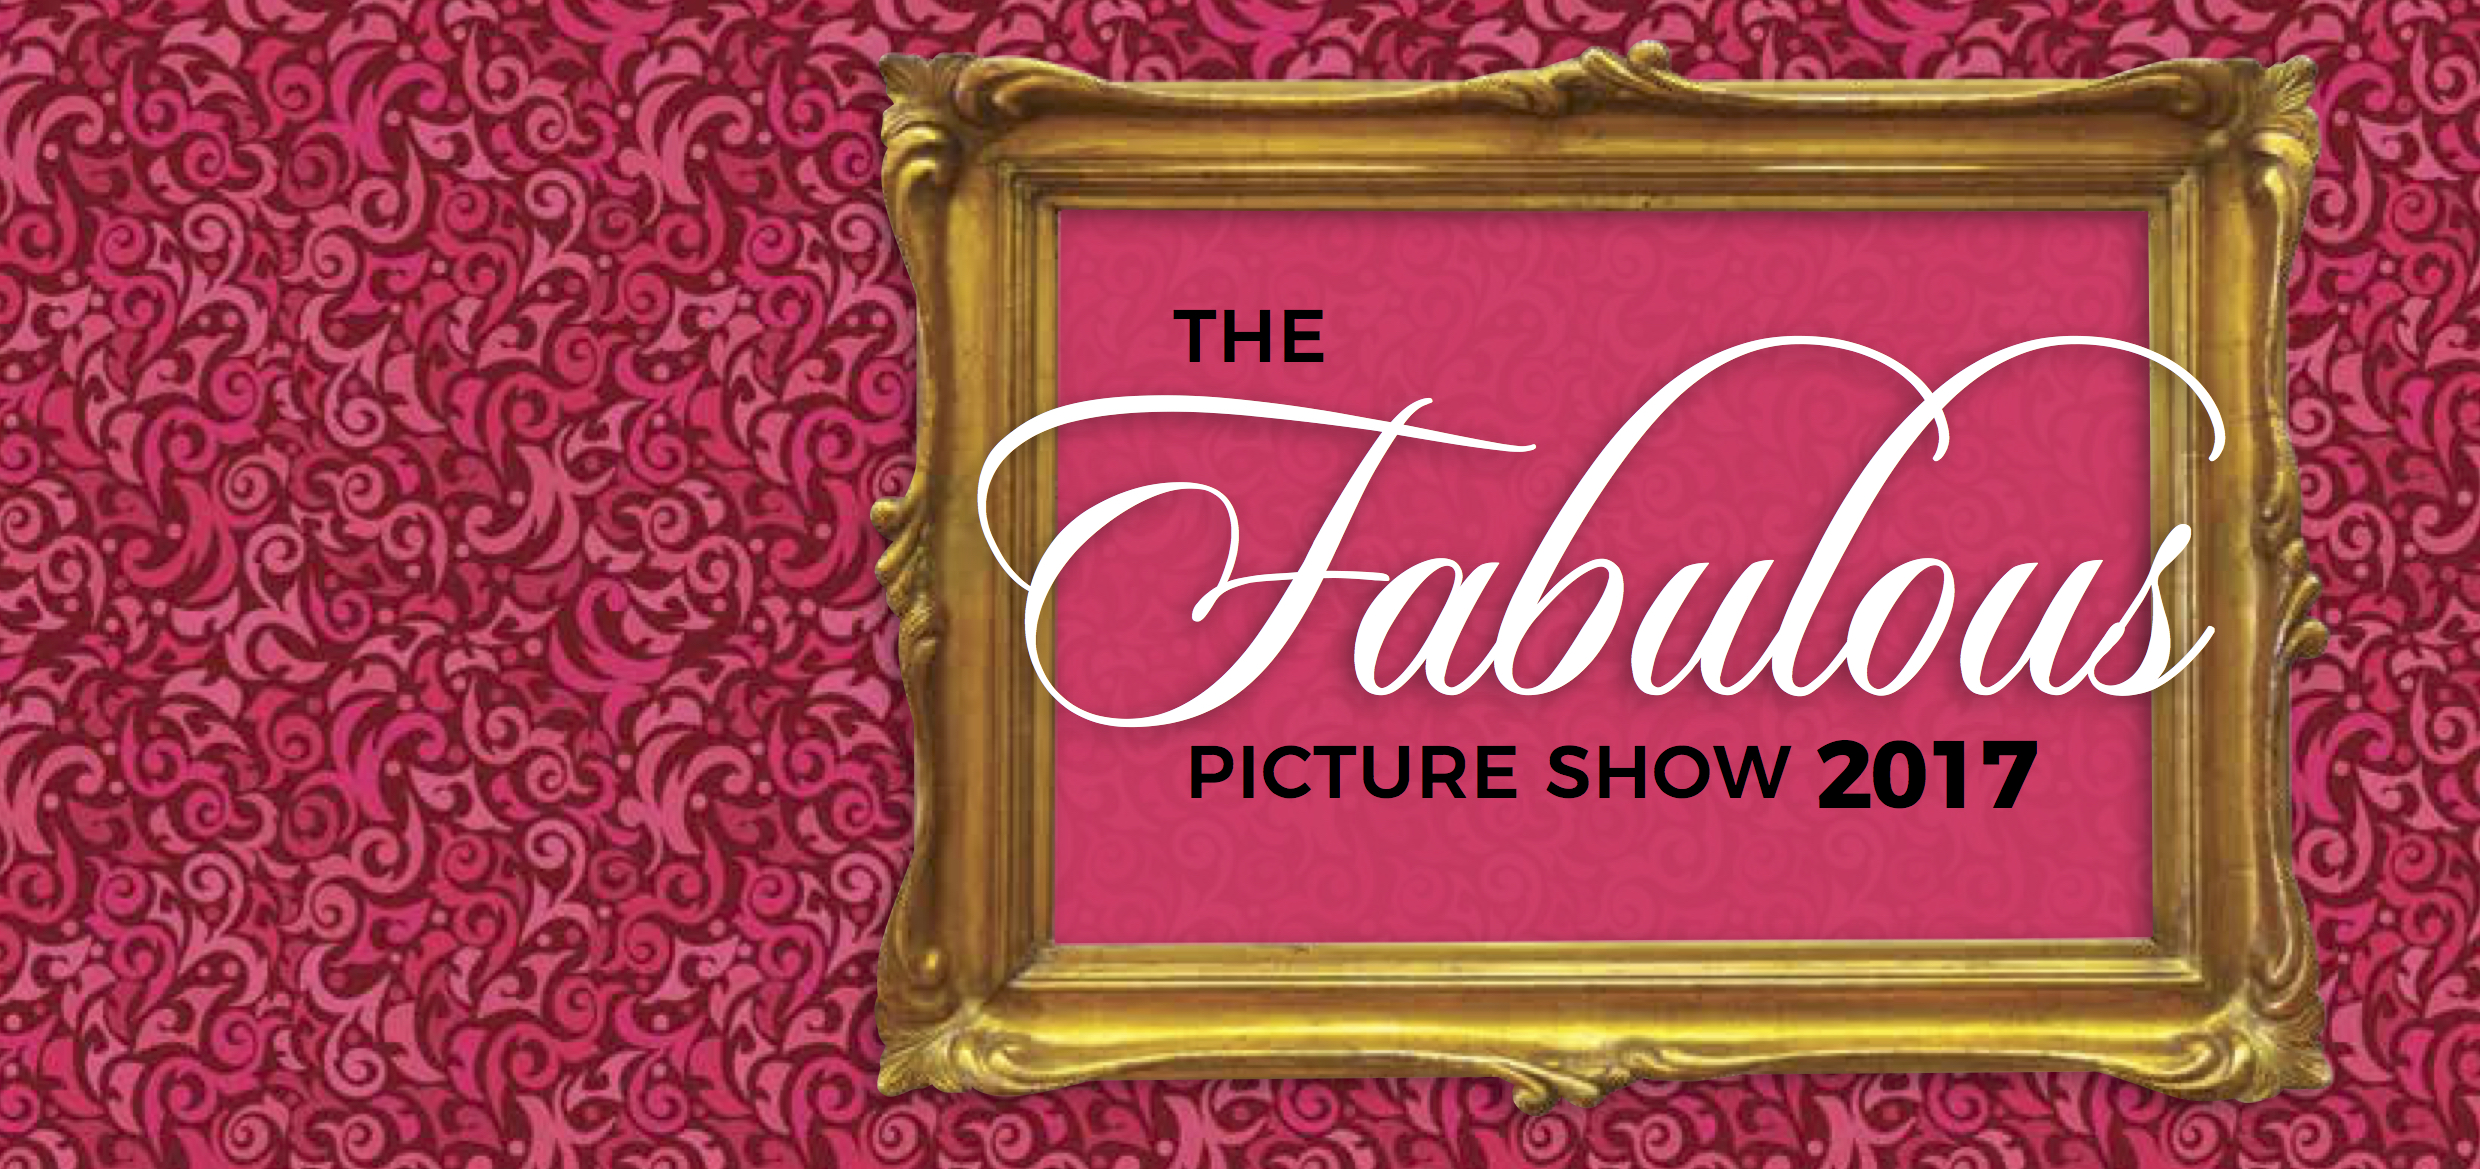 Visit THE FABULOUS PICTURE SHOW page for all details.